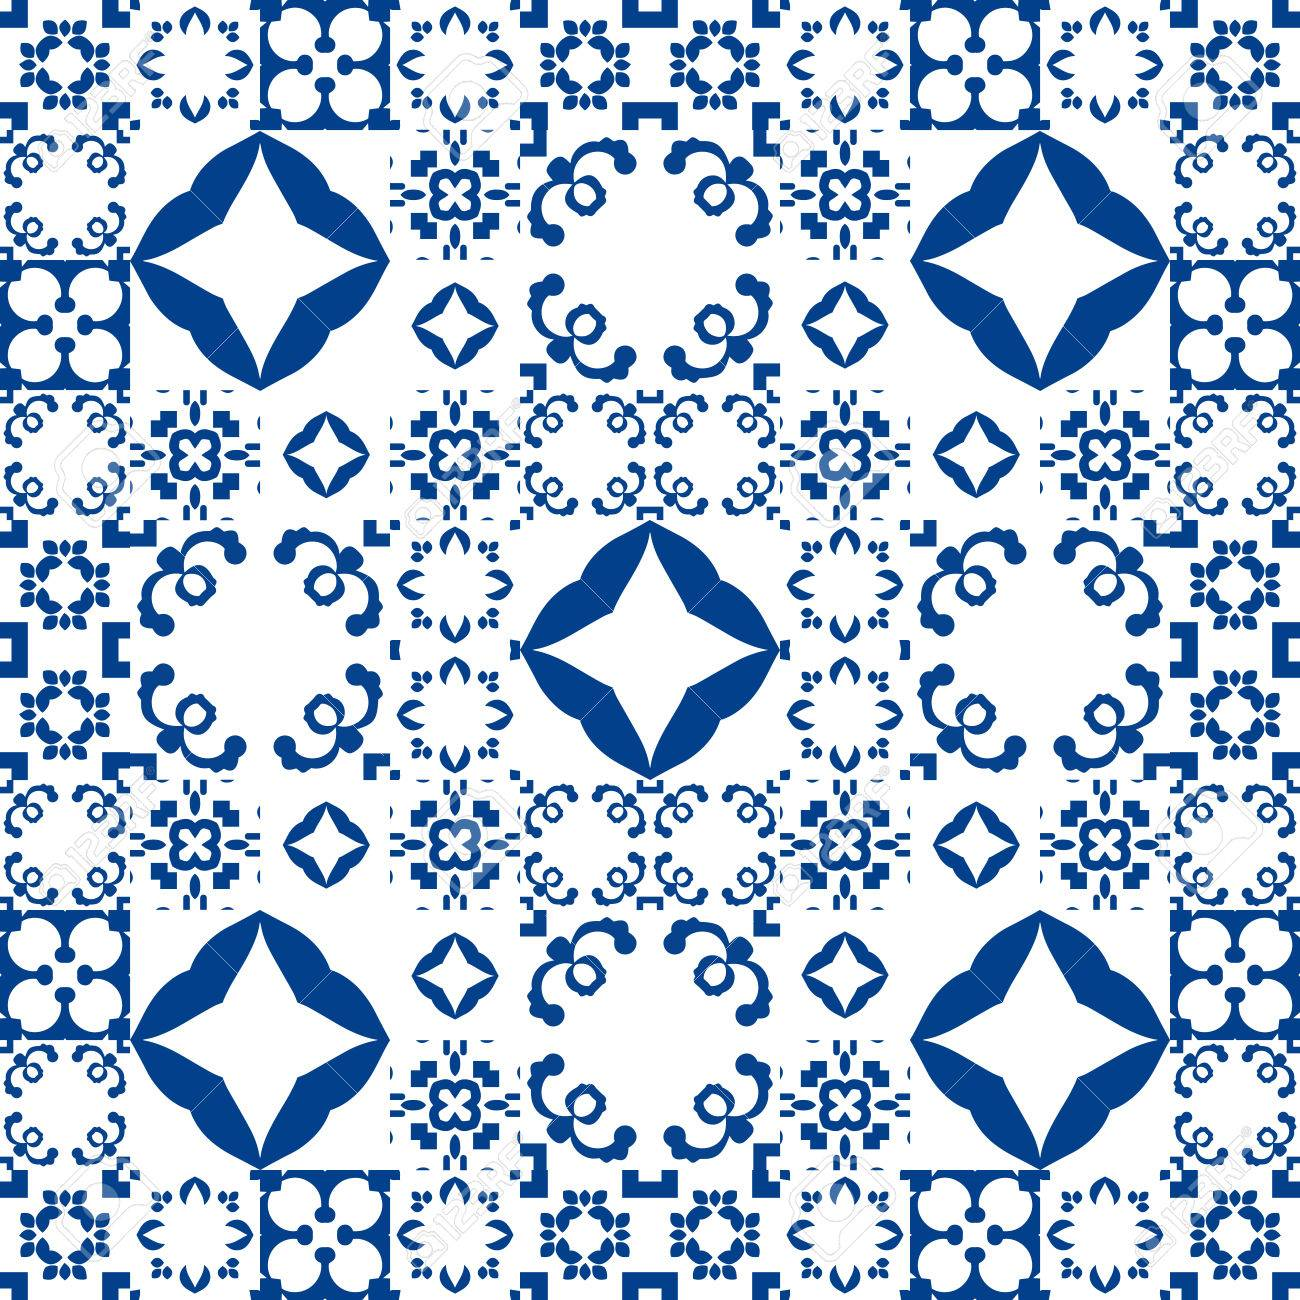 blue and white moroccan ceramic tiles patchwork pattern style